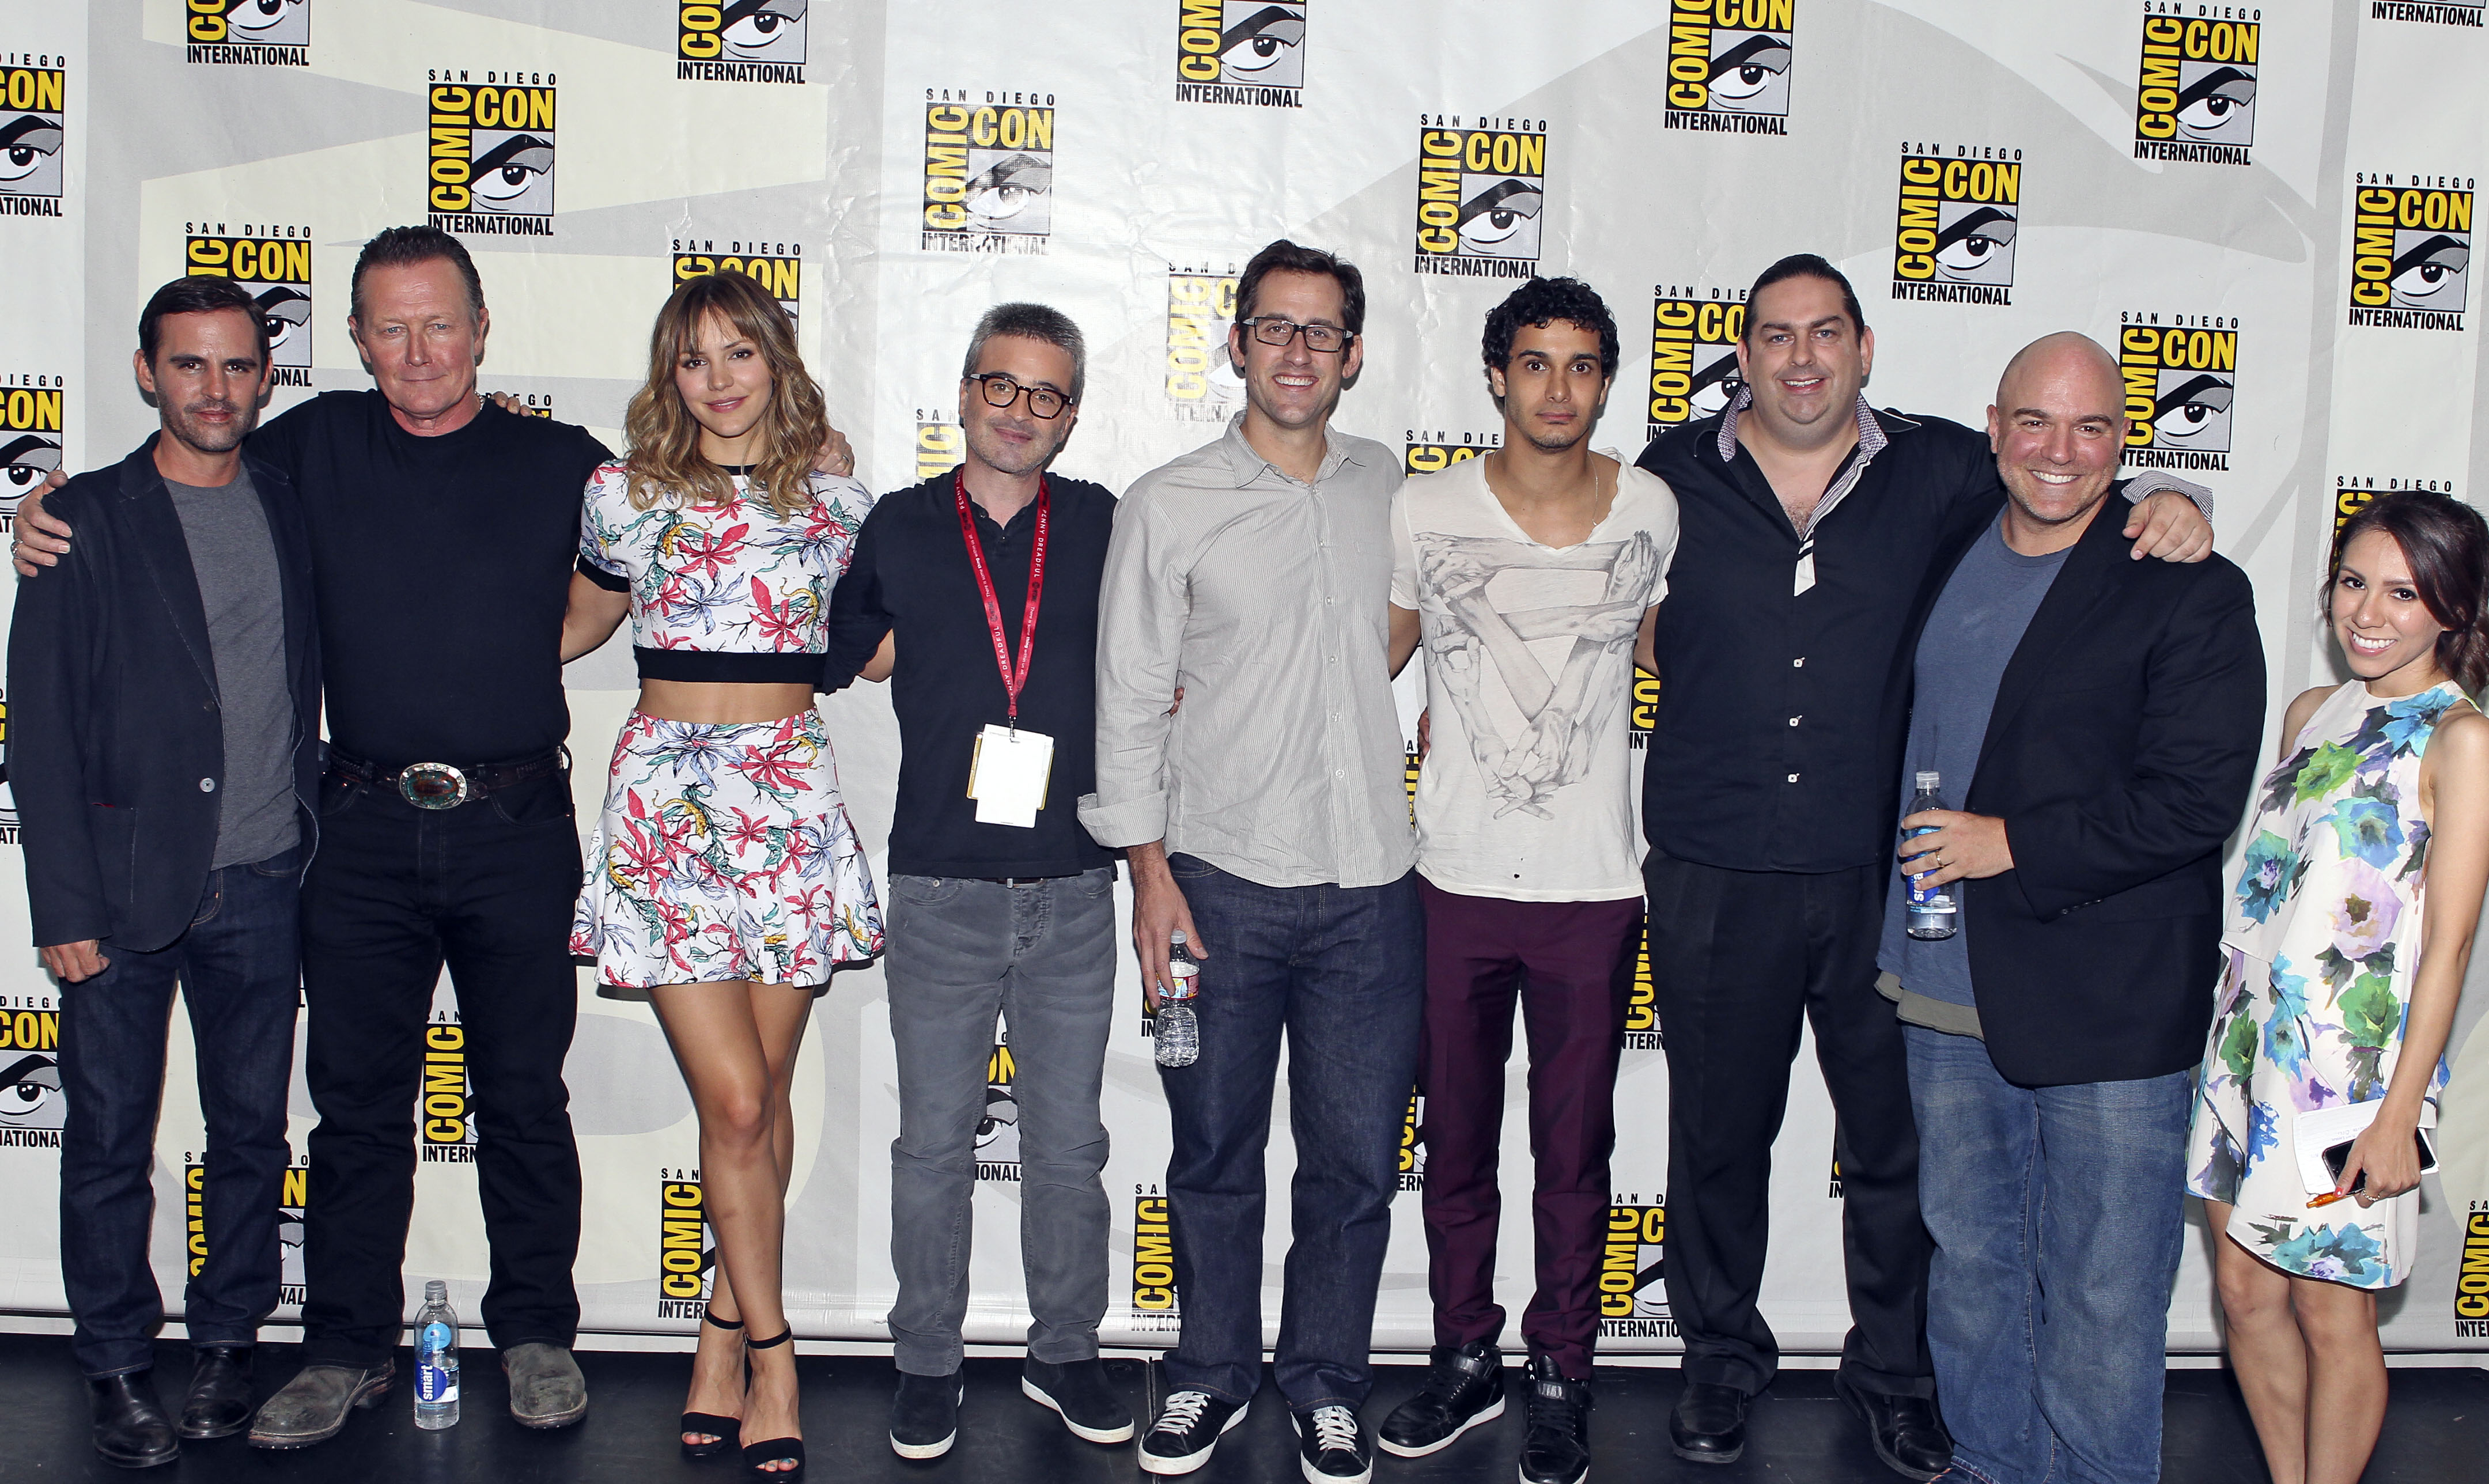 The Cast of Scorpion